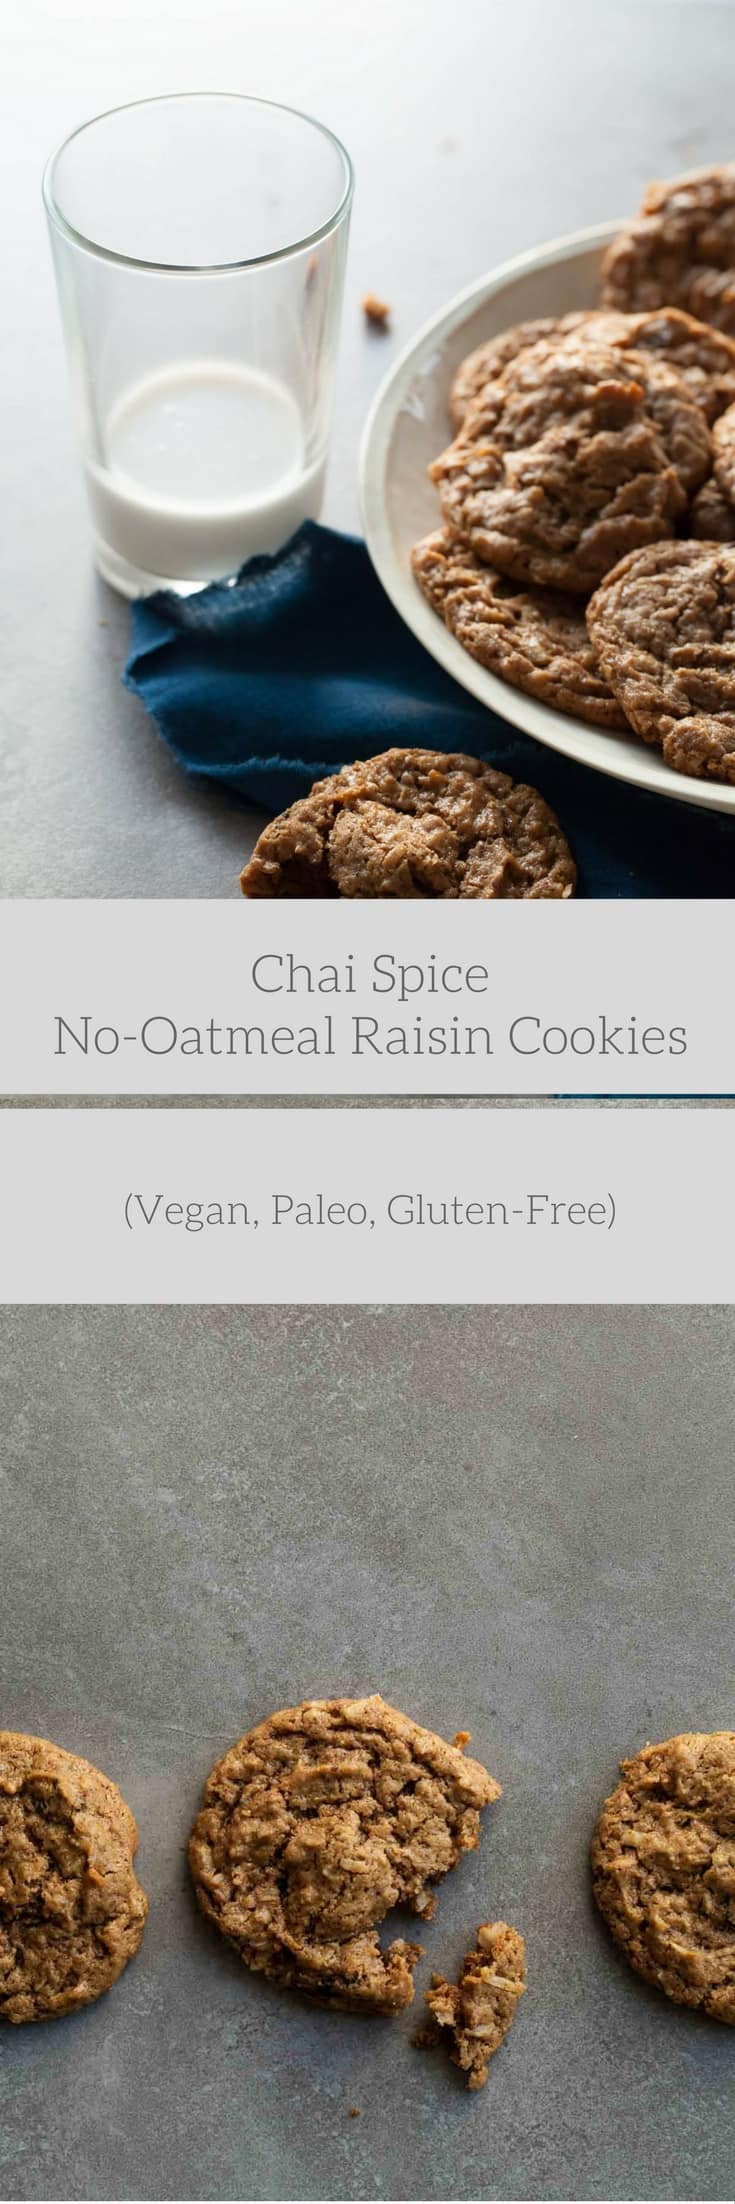 Chai Spice No-Oatmeal Raisin Cookies (Vegan, Paleo ...